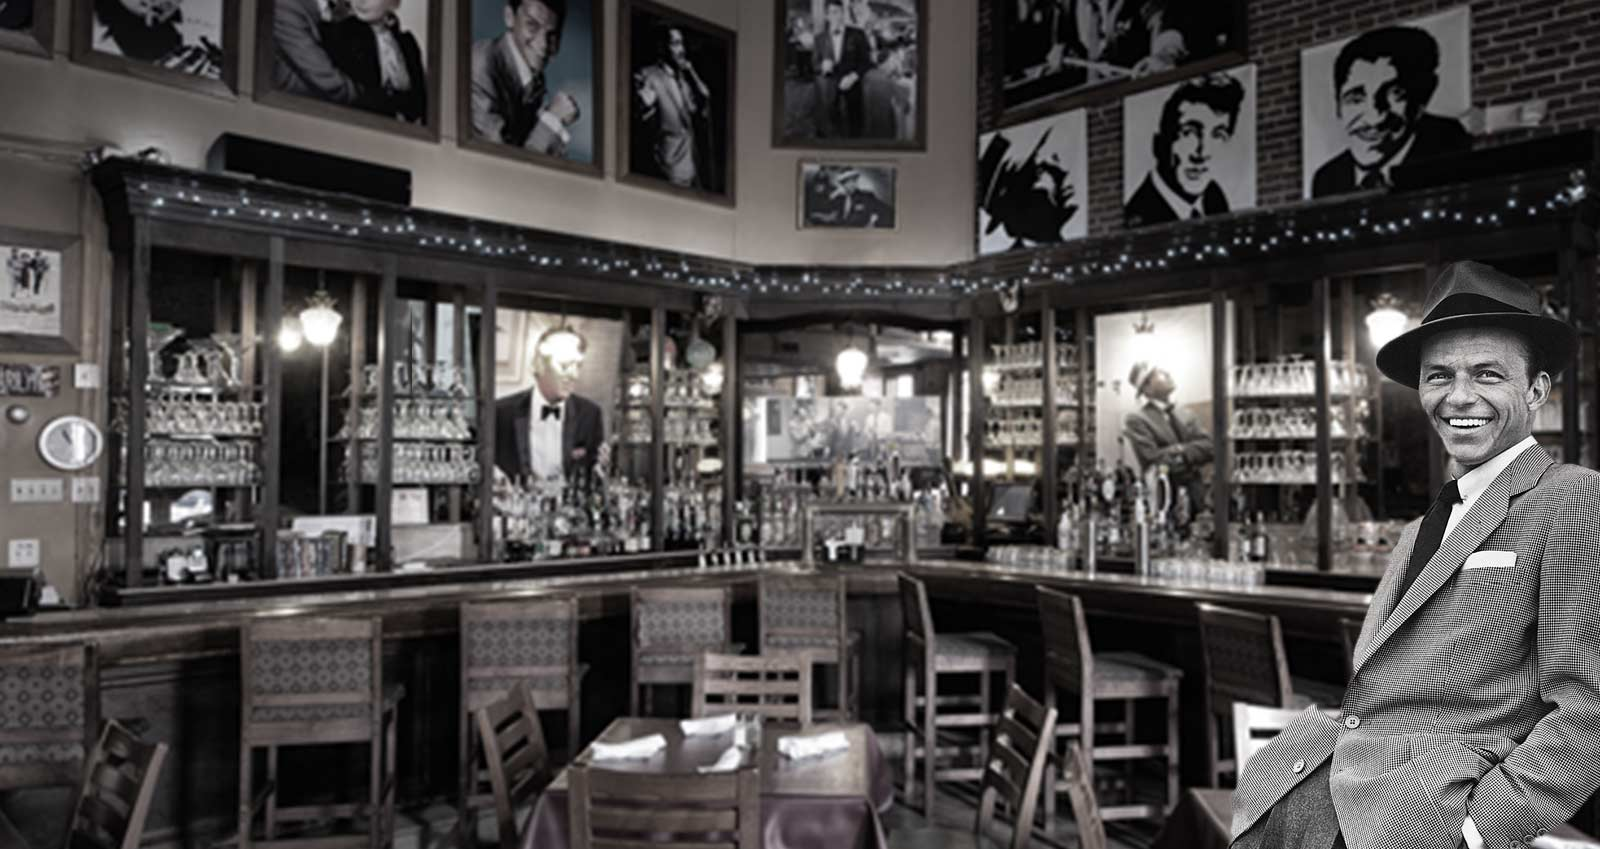 Supano's Steakhouse, Seafood & Italian pasta is a Frank Sinatra themed Baltimore Steakhouse featuring a jumbo screen and live music. We are located near the Baltimore Inner Harbor.